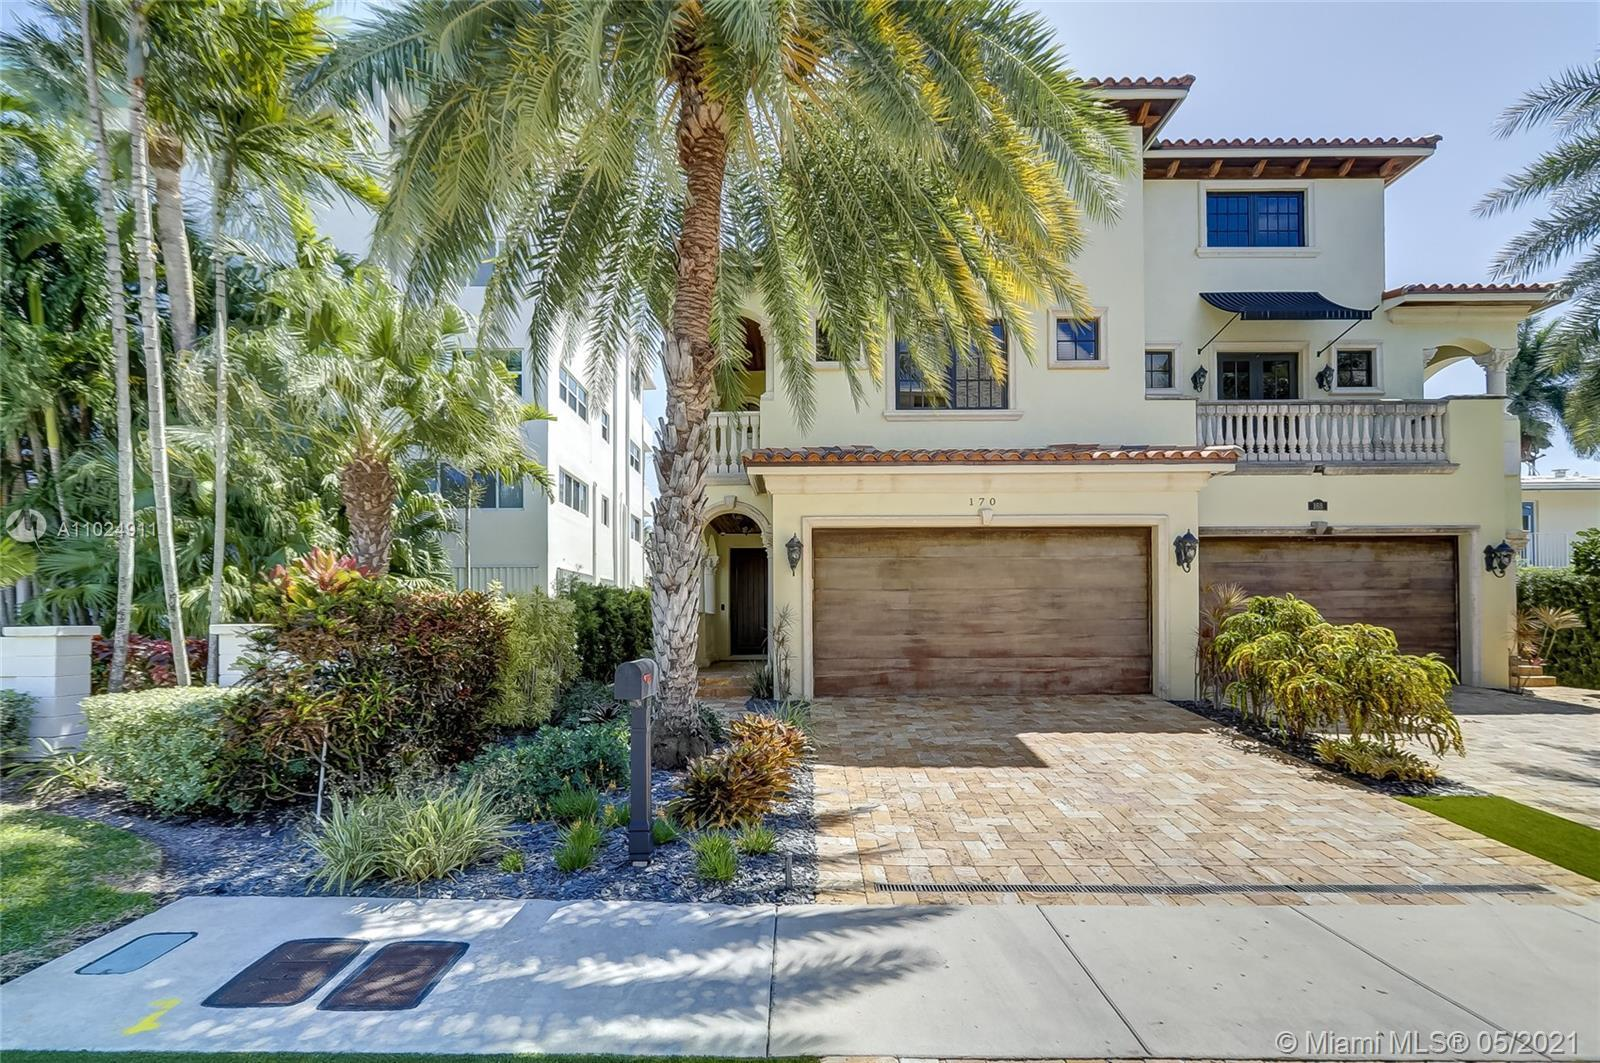 Gorgeous 3 Story townhome with stunning rooftop terrace with views of downtown Fort Lauderdale. This